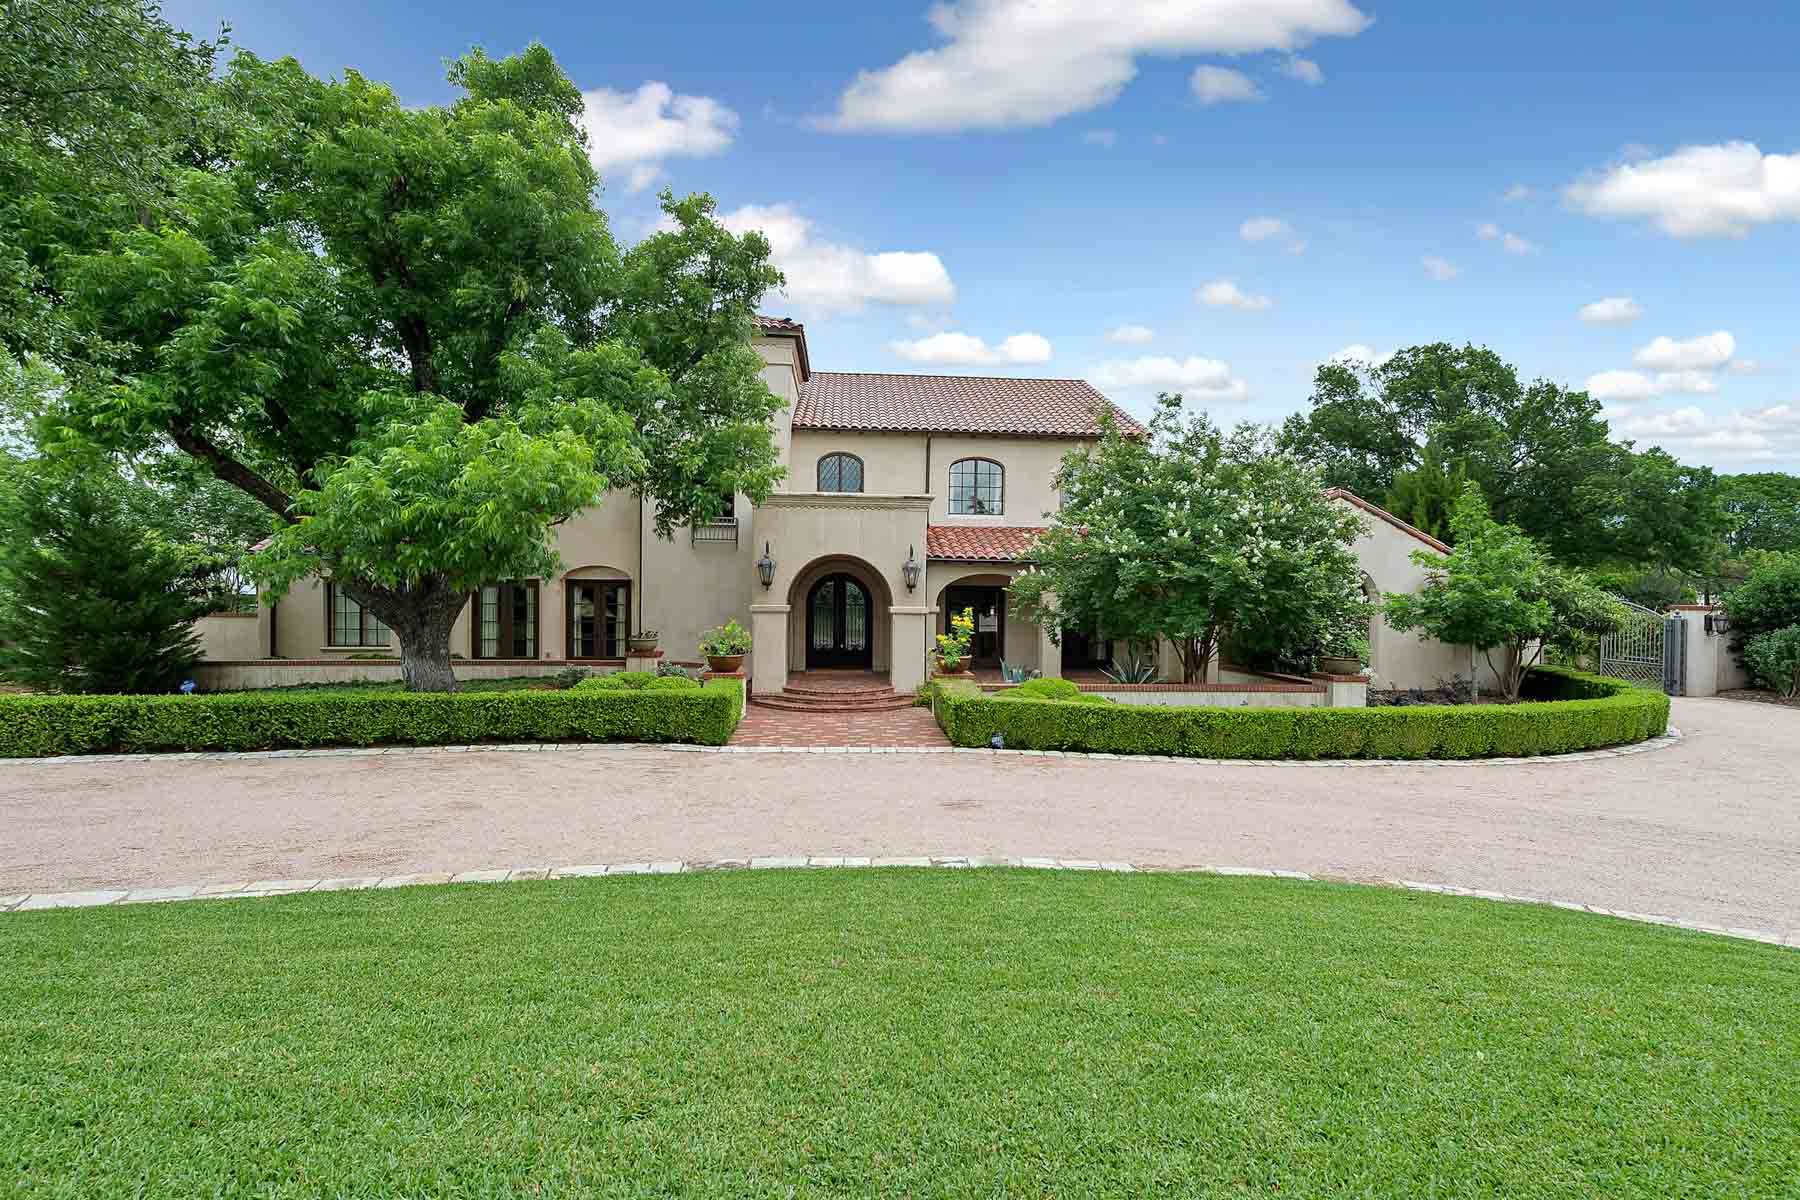 Maison unifamiliale pour l Vente à Beautiful Spanish Inspired Fort Worth Home 2017 Four Oaks Fort Worth, Texas, 76107 États-Unis